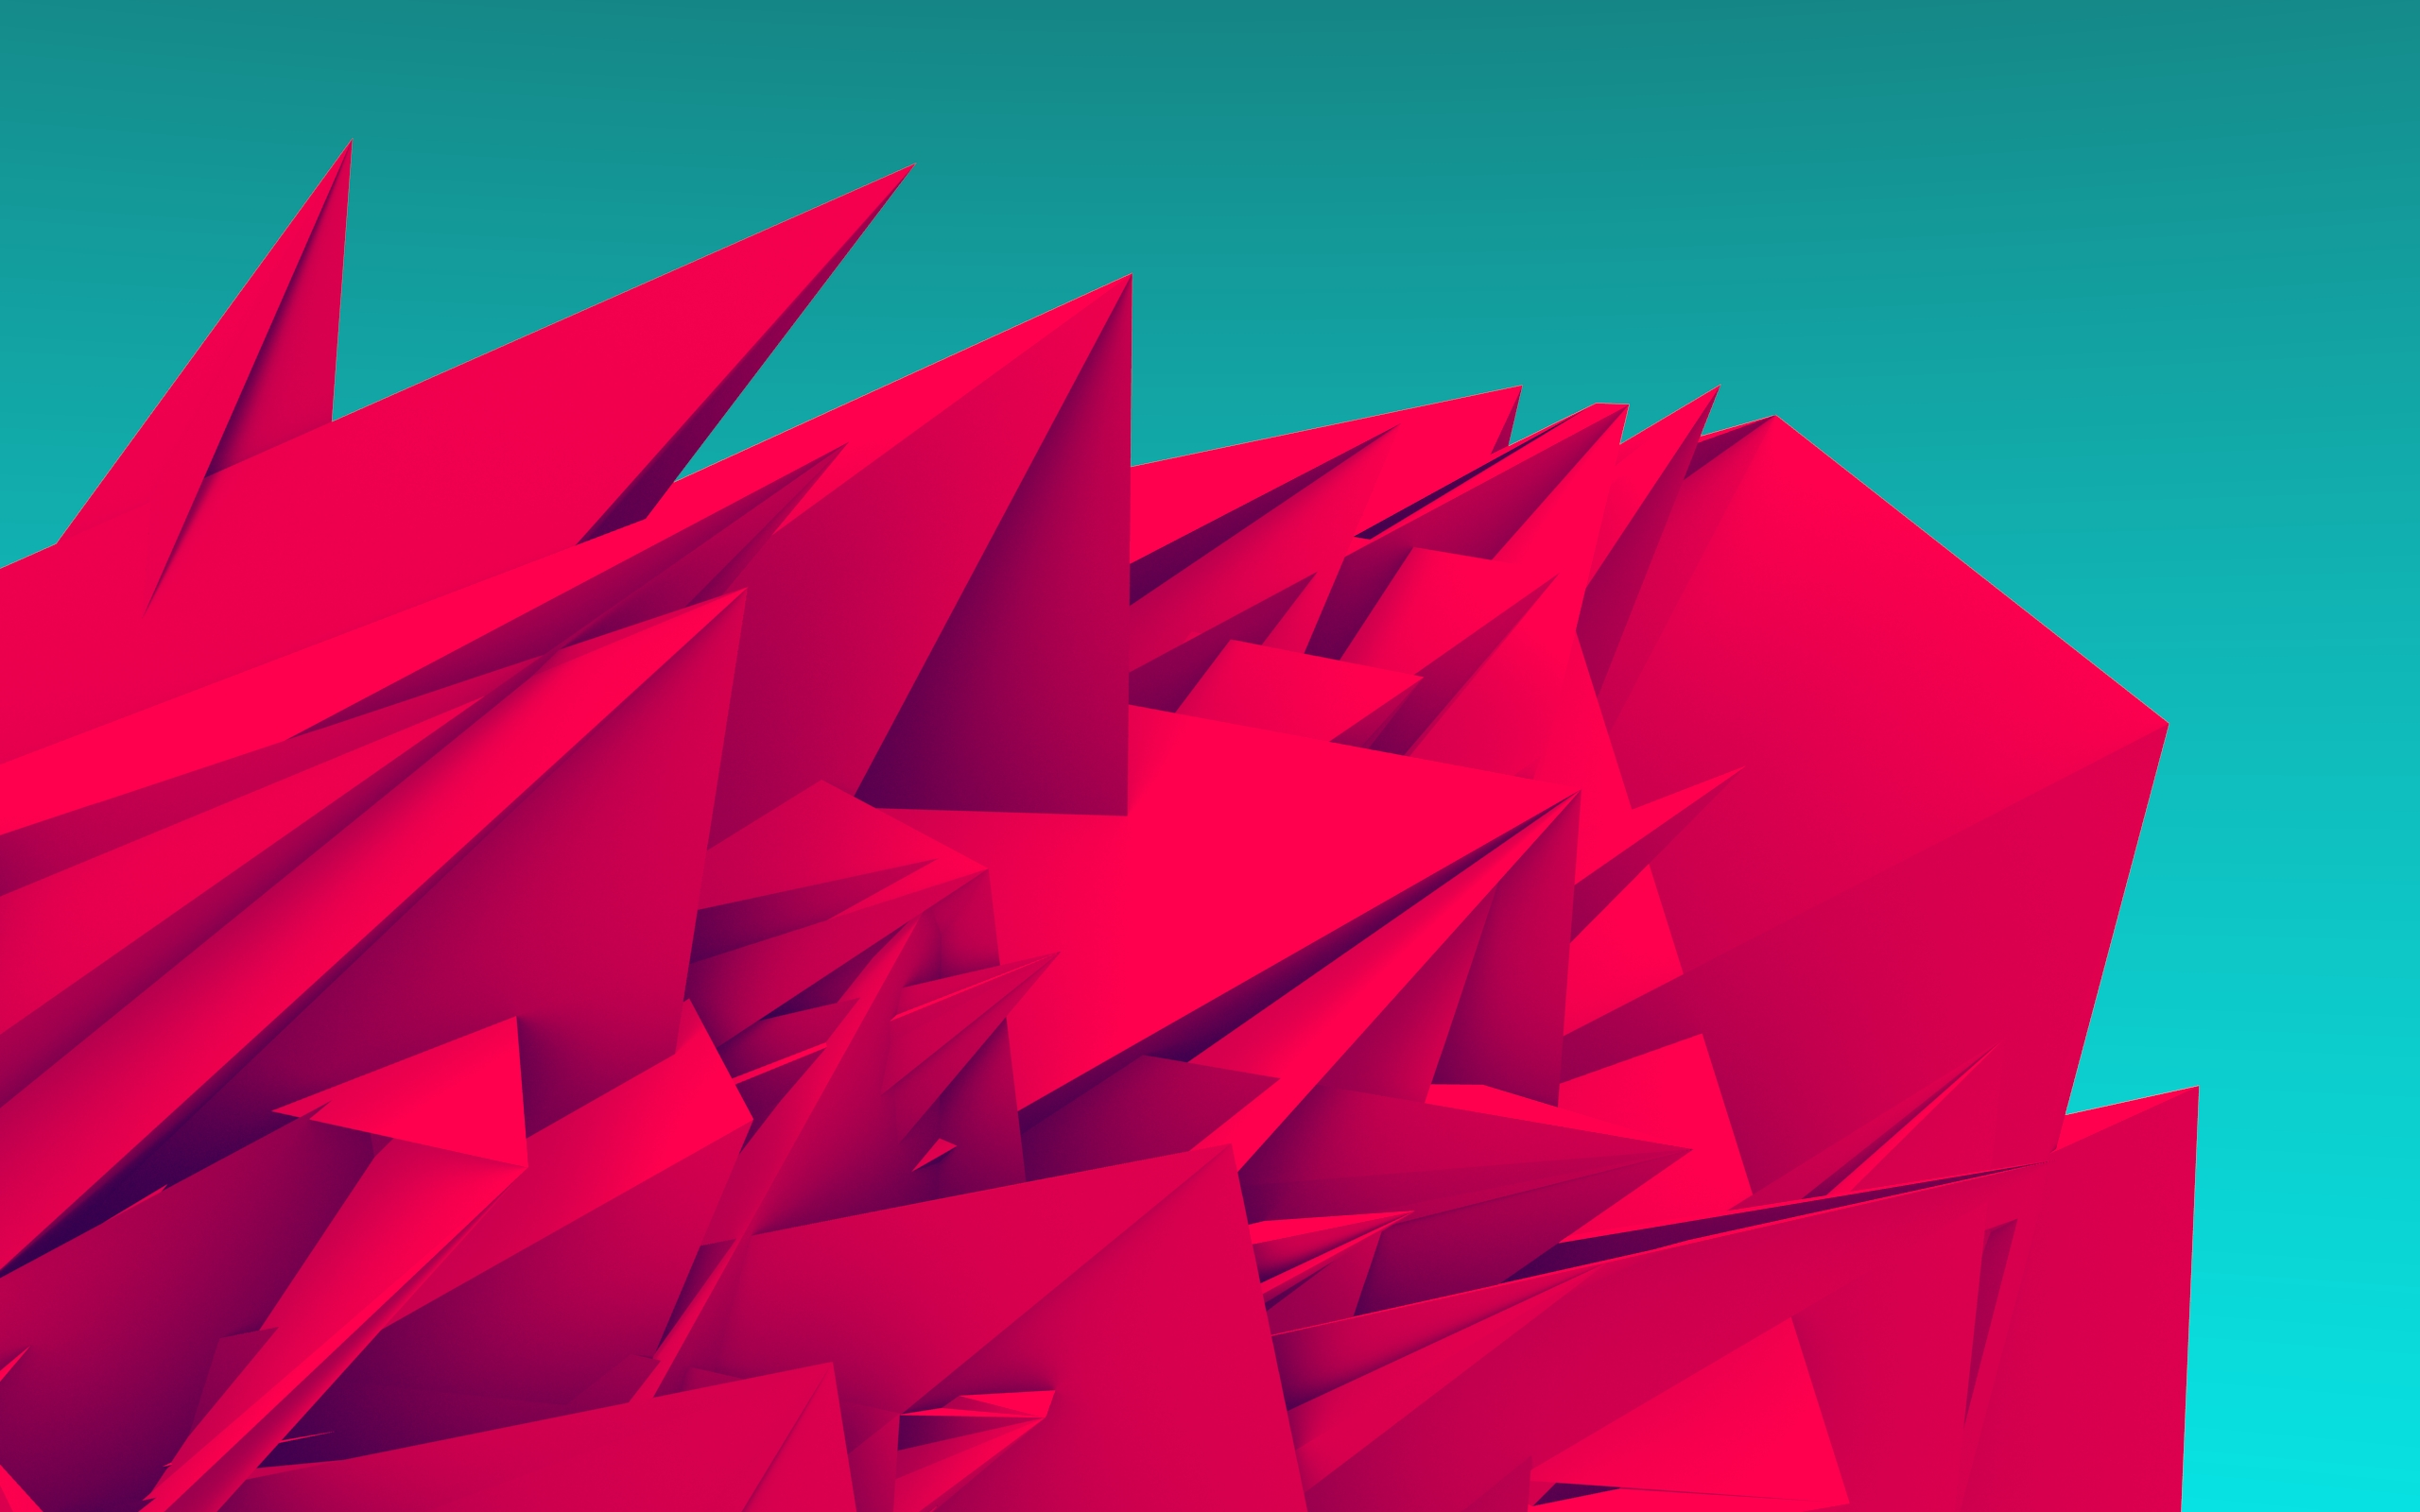 Android Wallpaper Low Poly Art